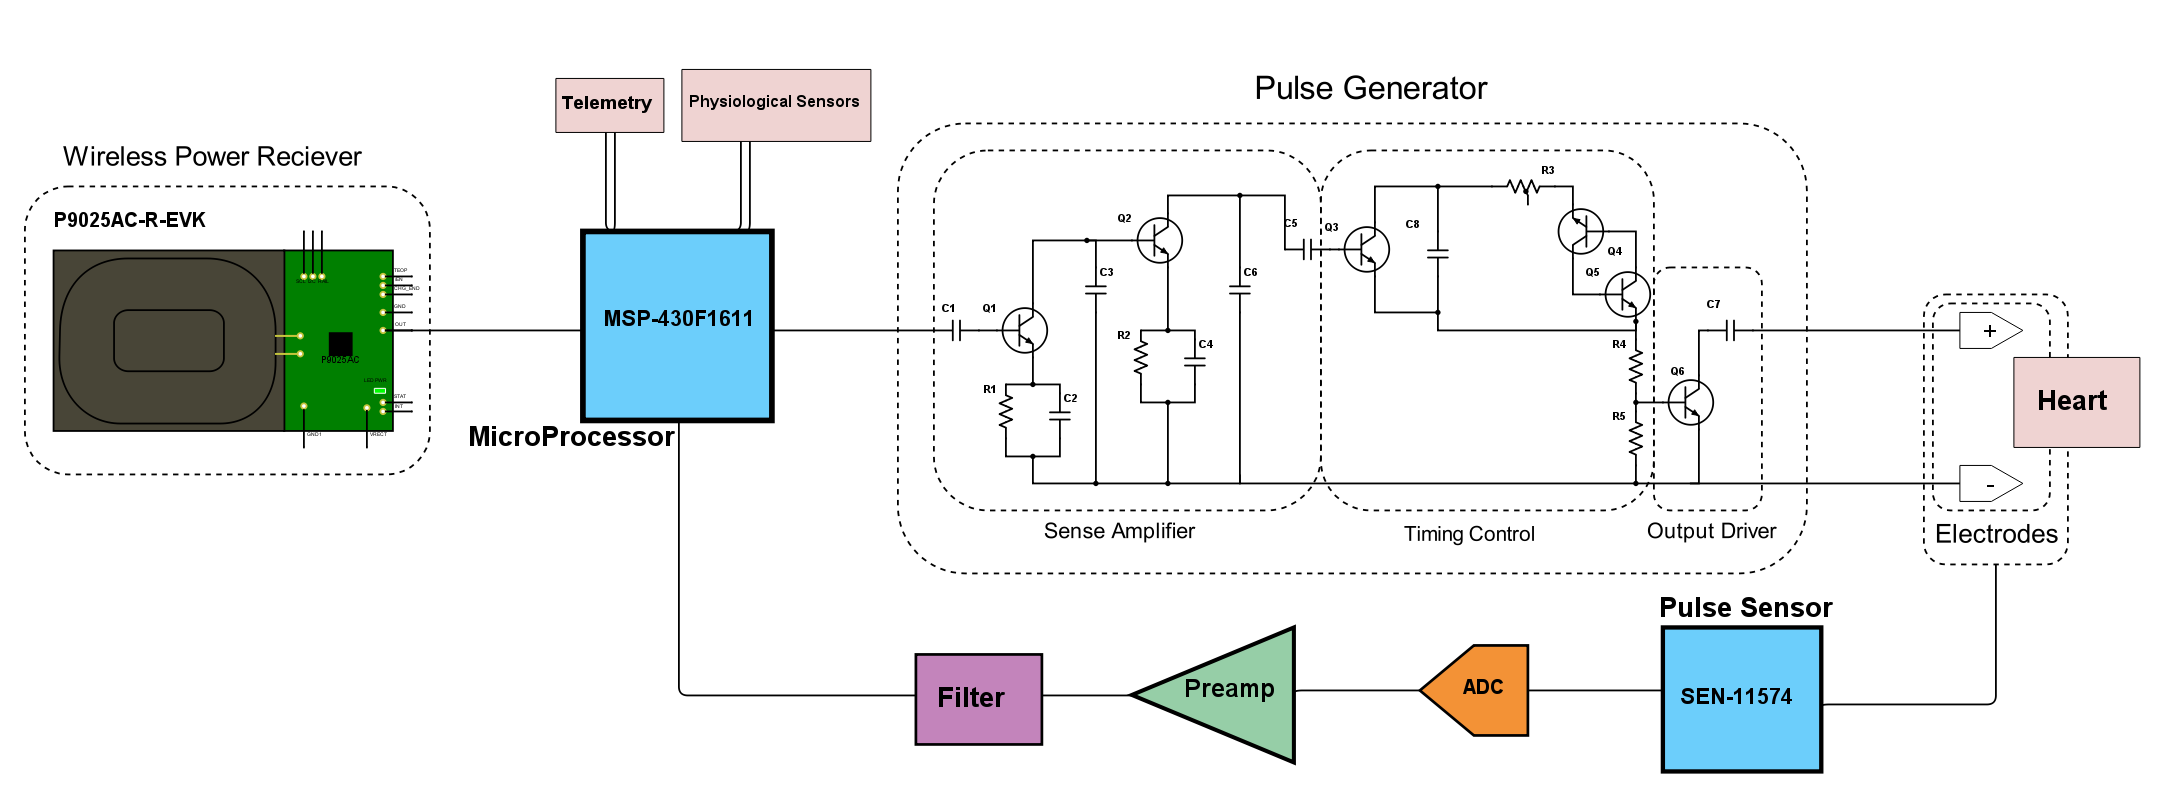 PaceMaker Schematic pacemaker with wireless charging capabilities hackster io